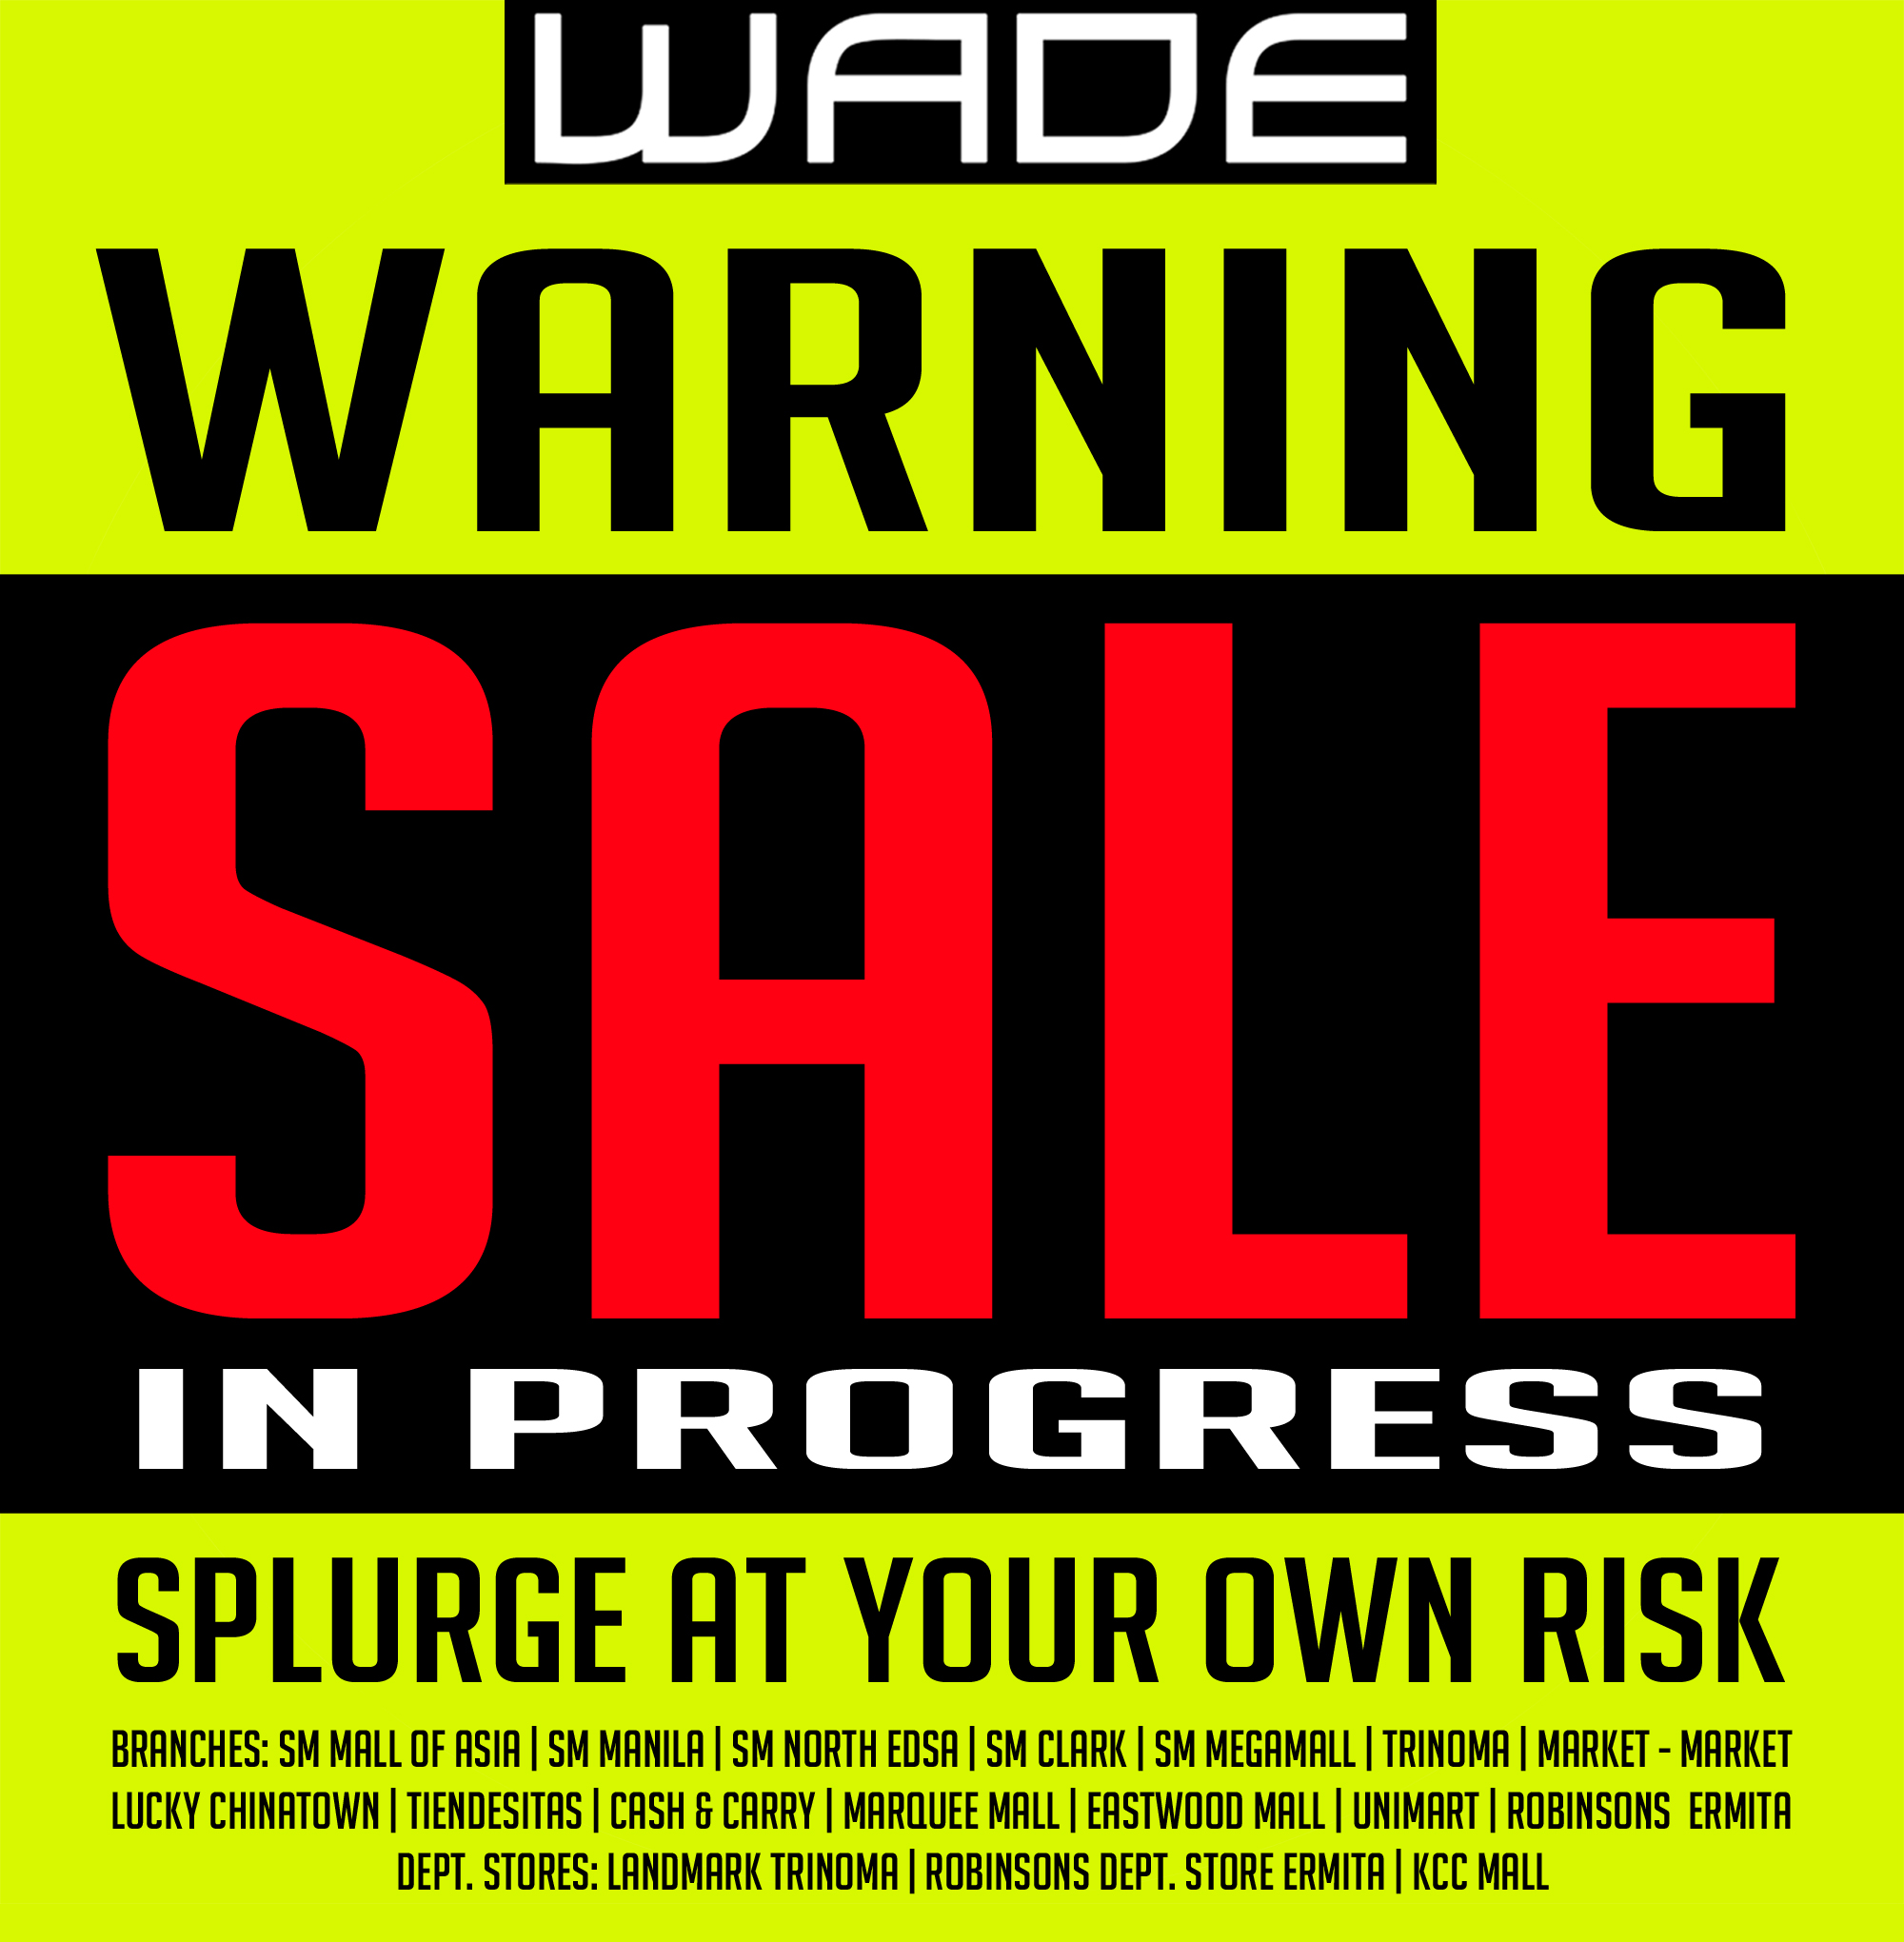 Wade Shoes and Accessories End of Season Sale May - August 2014